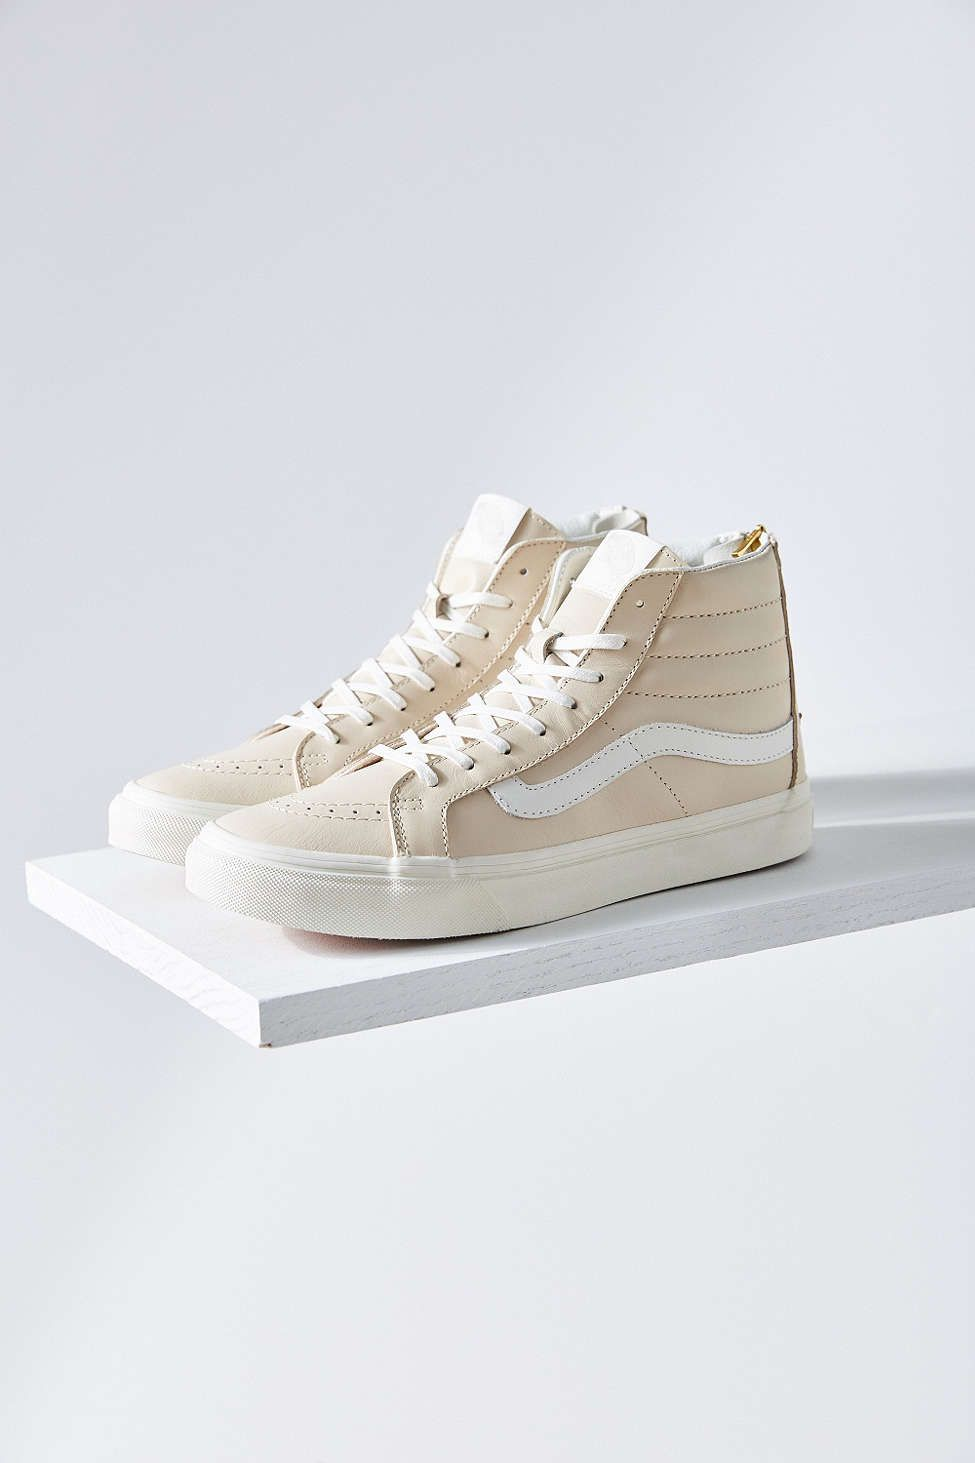 de369f4ac302 Vans Cream Leather Sk8-Hi Slim Sneaker  UrbanOutfitters